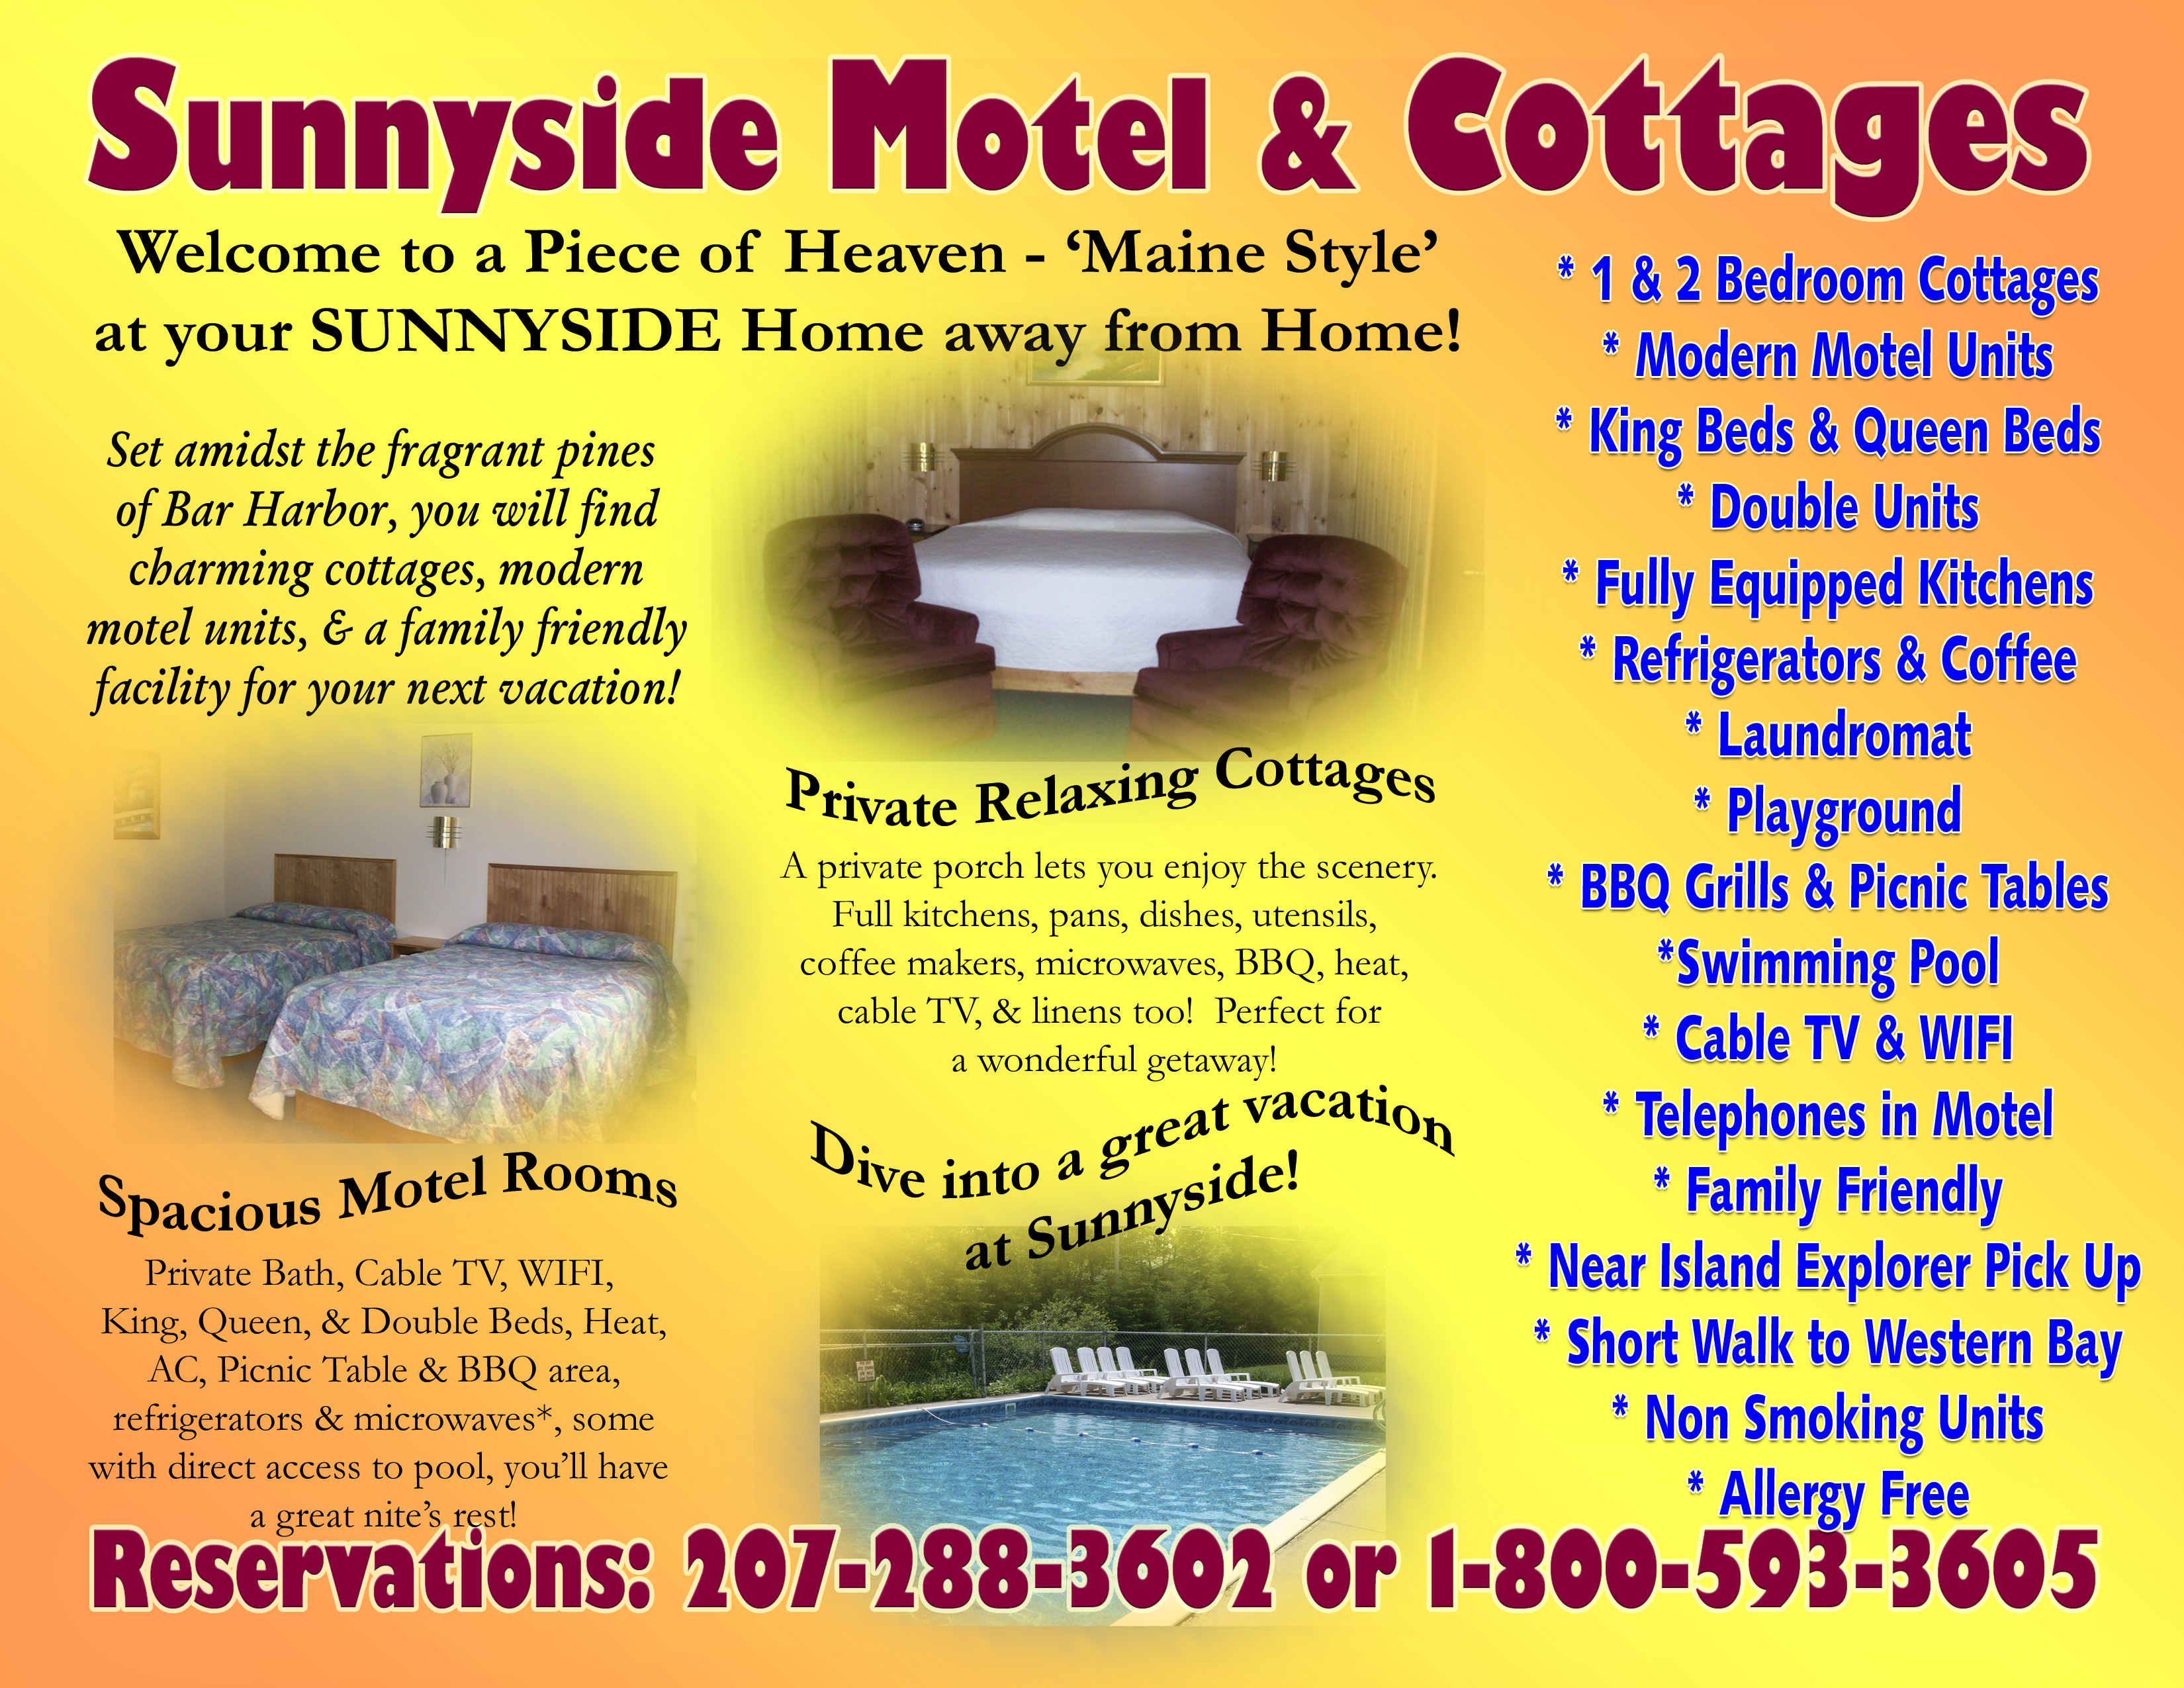 Click to View sunnyside borchure inside